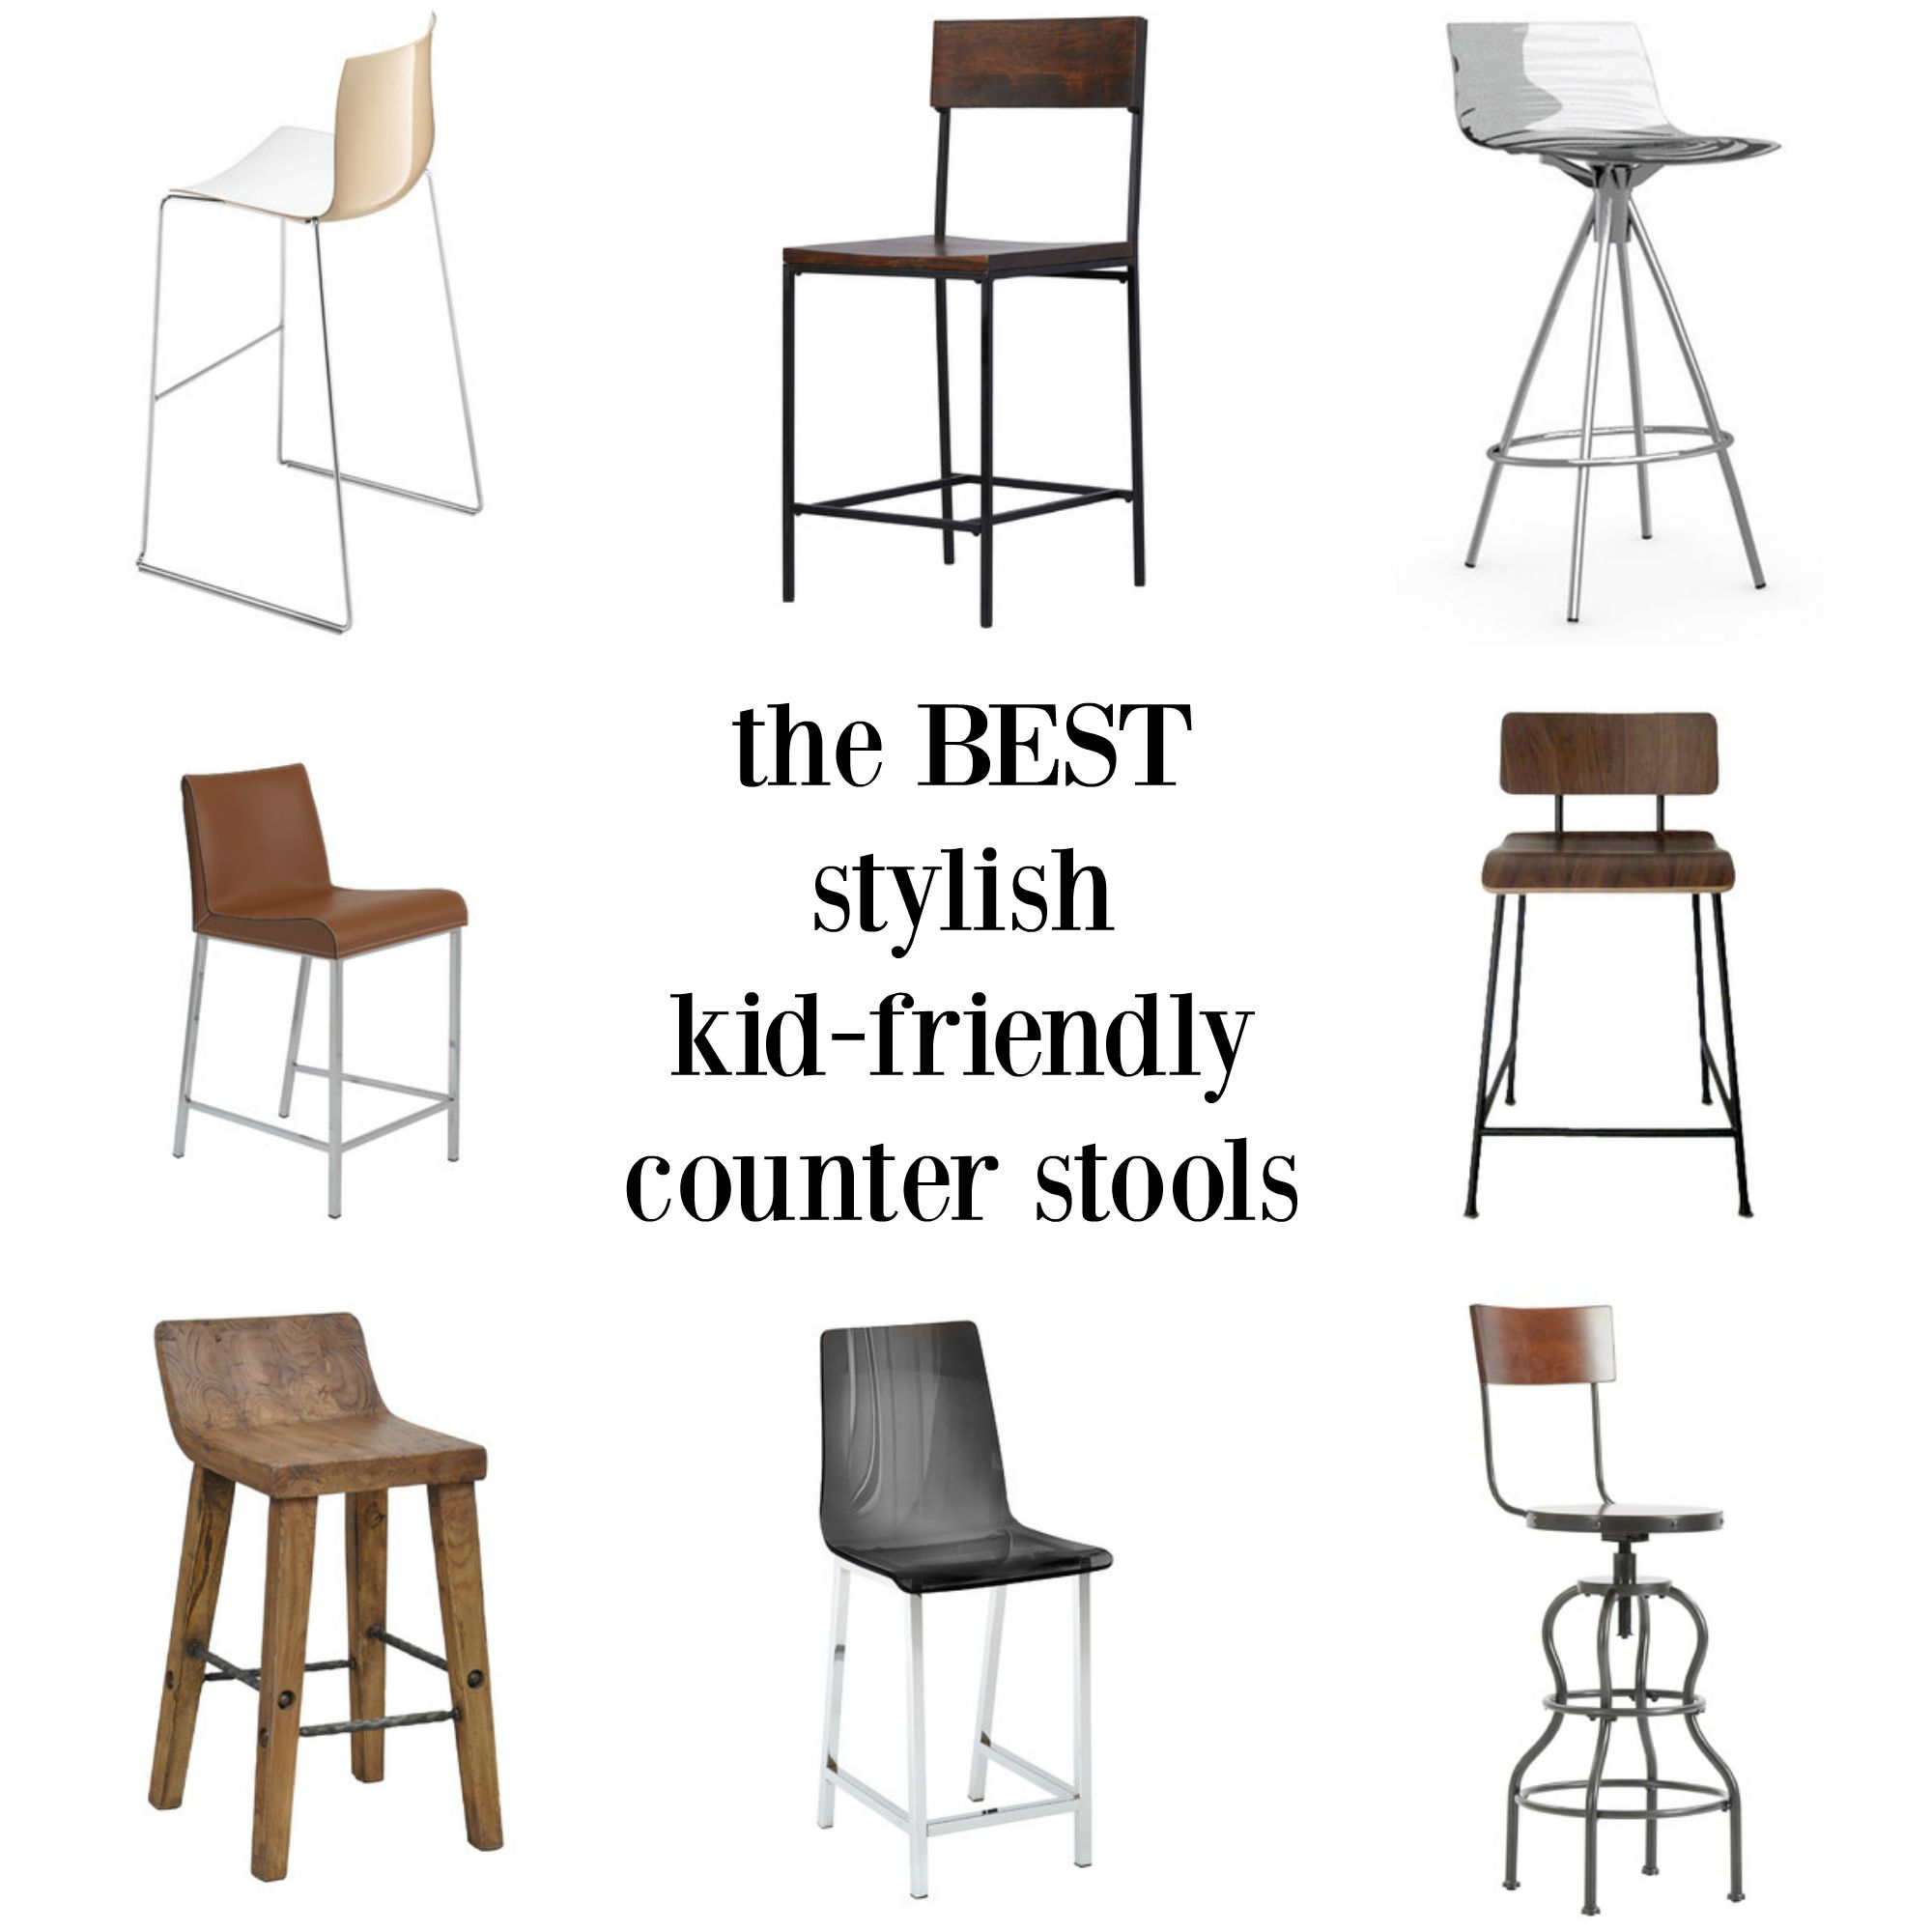 28 Barstools The Counter Stools Search The Best Stylish Kid Friendly